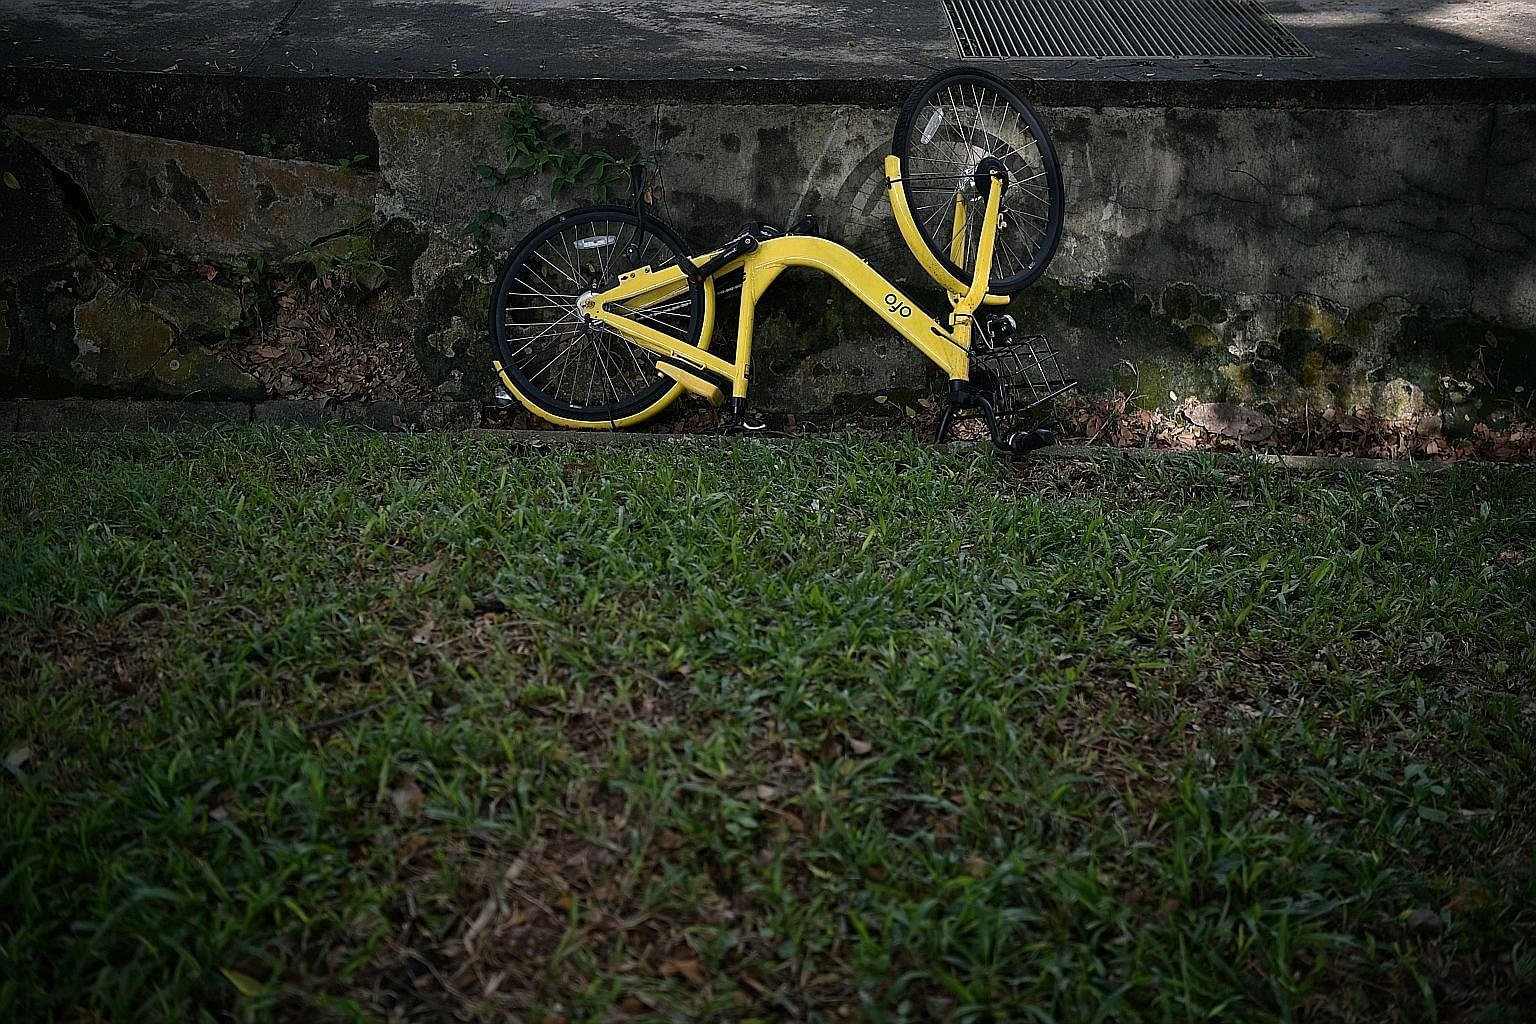 """In an update, the Land Transport Authority said it cancelled ofo's bike-sharing operating licence yesterday as the company has not provided """"sufficient justifications on why its licence should not be cancelled"""". ST PHOTO: KUA CHEE SIONG"""